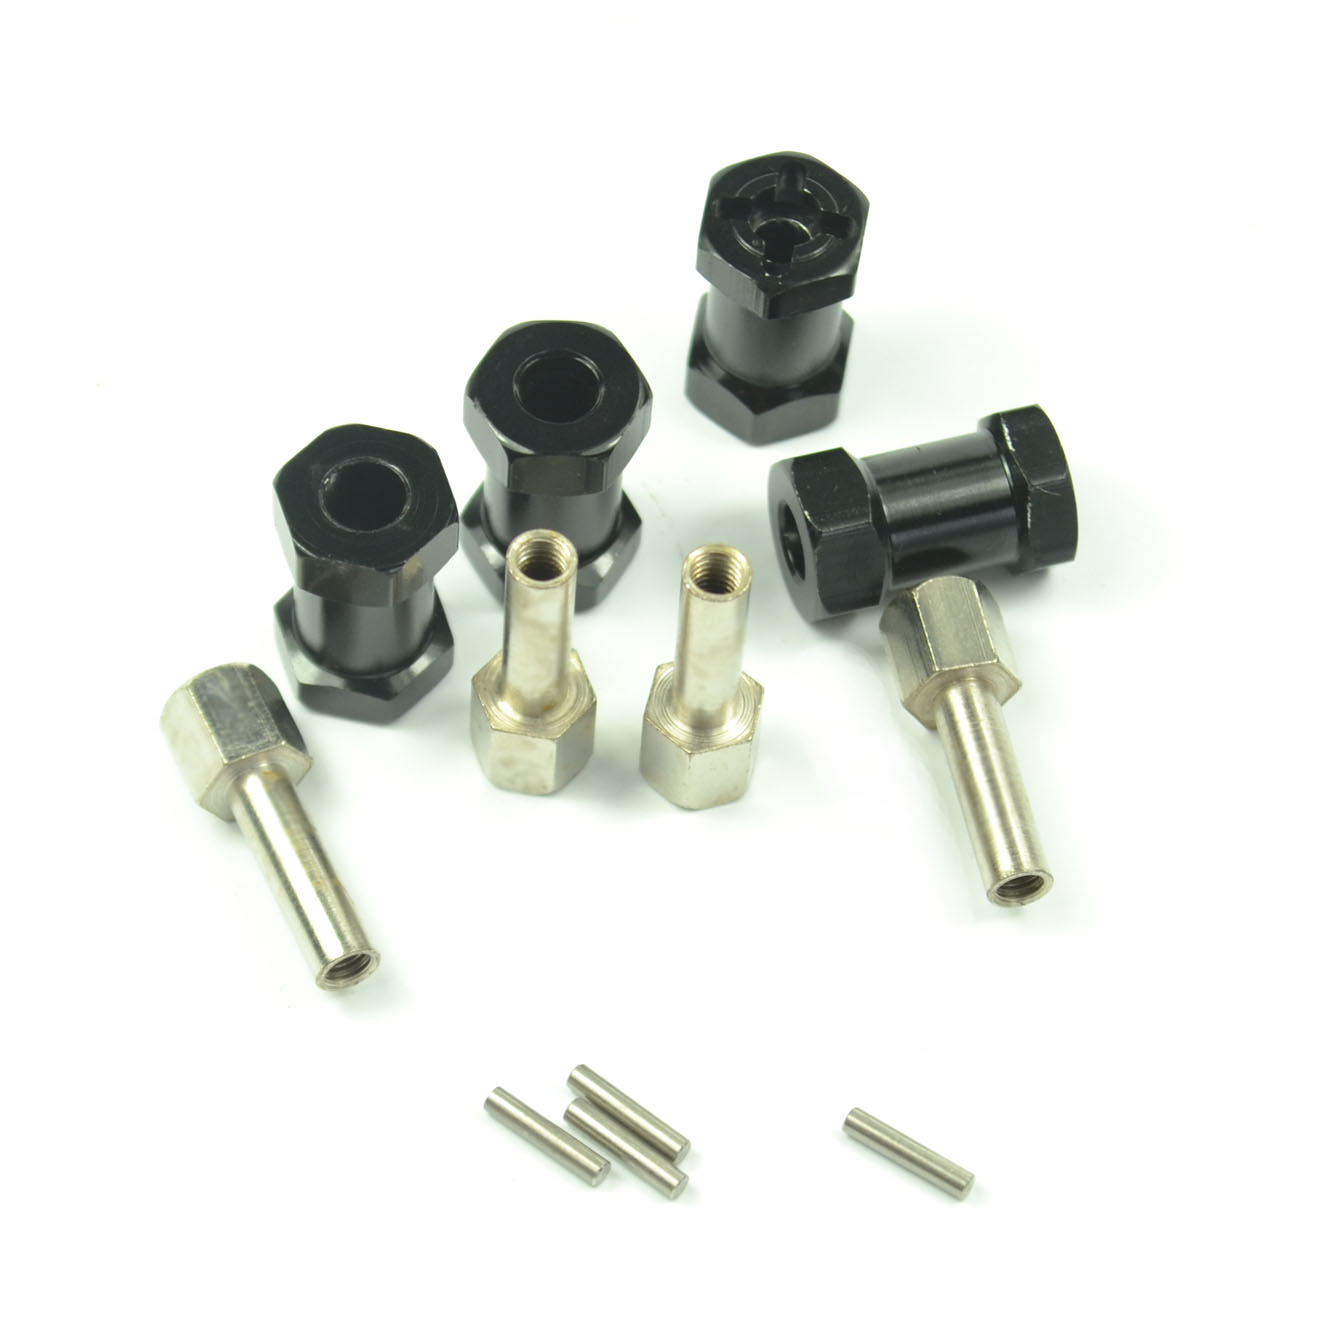 4PCS 1/10 RC Rock Crawler Uppgraderingslängd Aluminium 20MM Förlängningsadapter Alloy Hub HEX 12MM SCX10 RC4WD D90